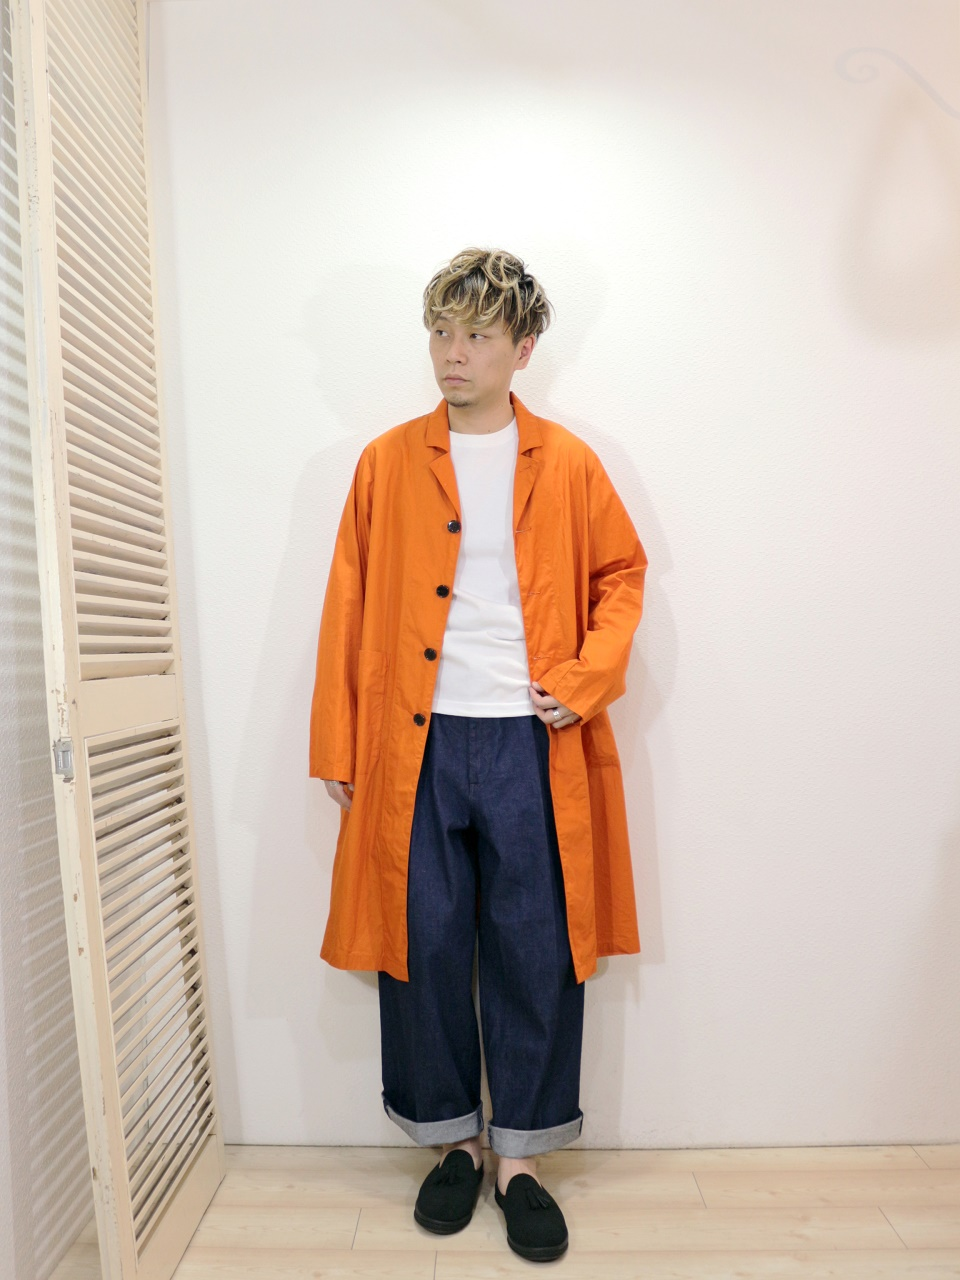 "outer/H.UNIT-Broadcloth long atelier coat(SIZE 1)tee/modem design-U.S.COTTON L/S TEE(S-4)(SIZE 1)pants/H.UNIT-Denim crown size tuck trousers(SIZE 1)shoes/MANEBU-""PRAN SLIPPER""SUEDE(SIZE 40)を使ったコーディネート"